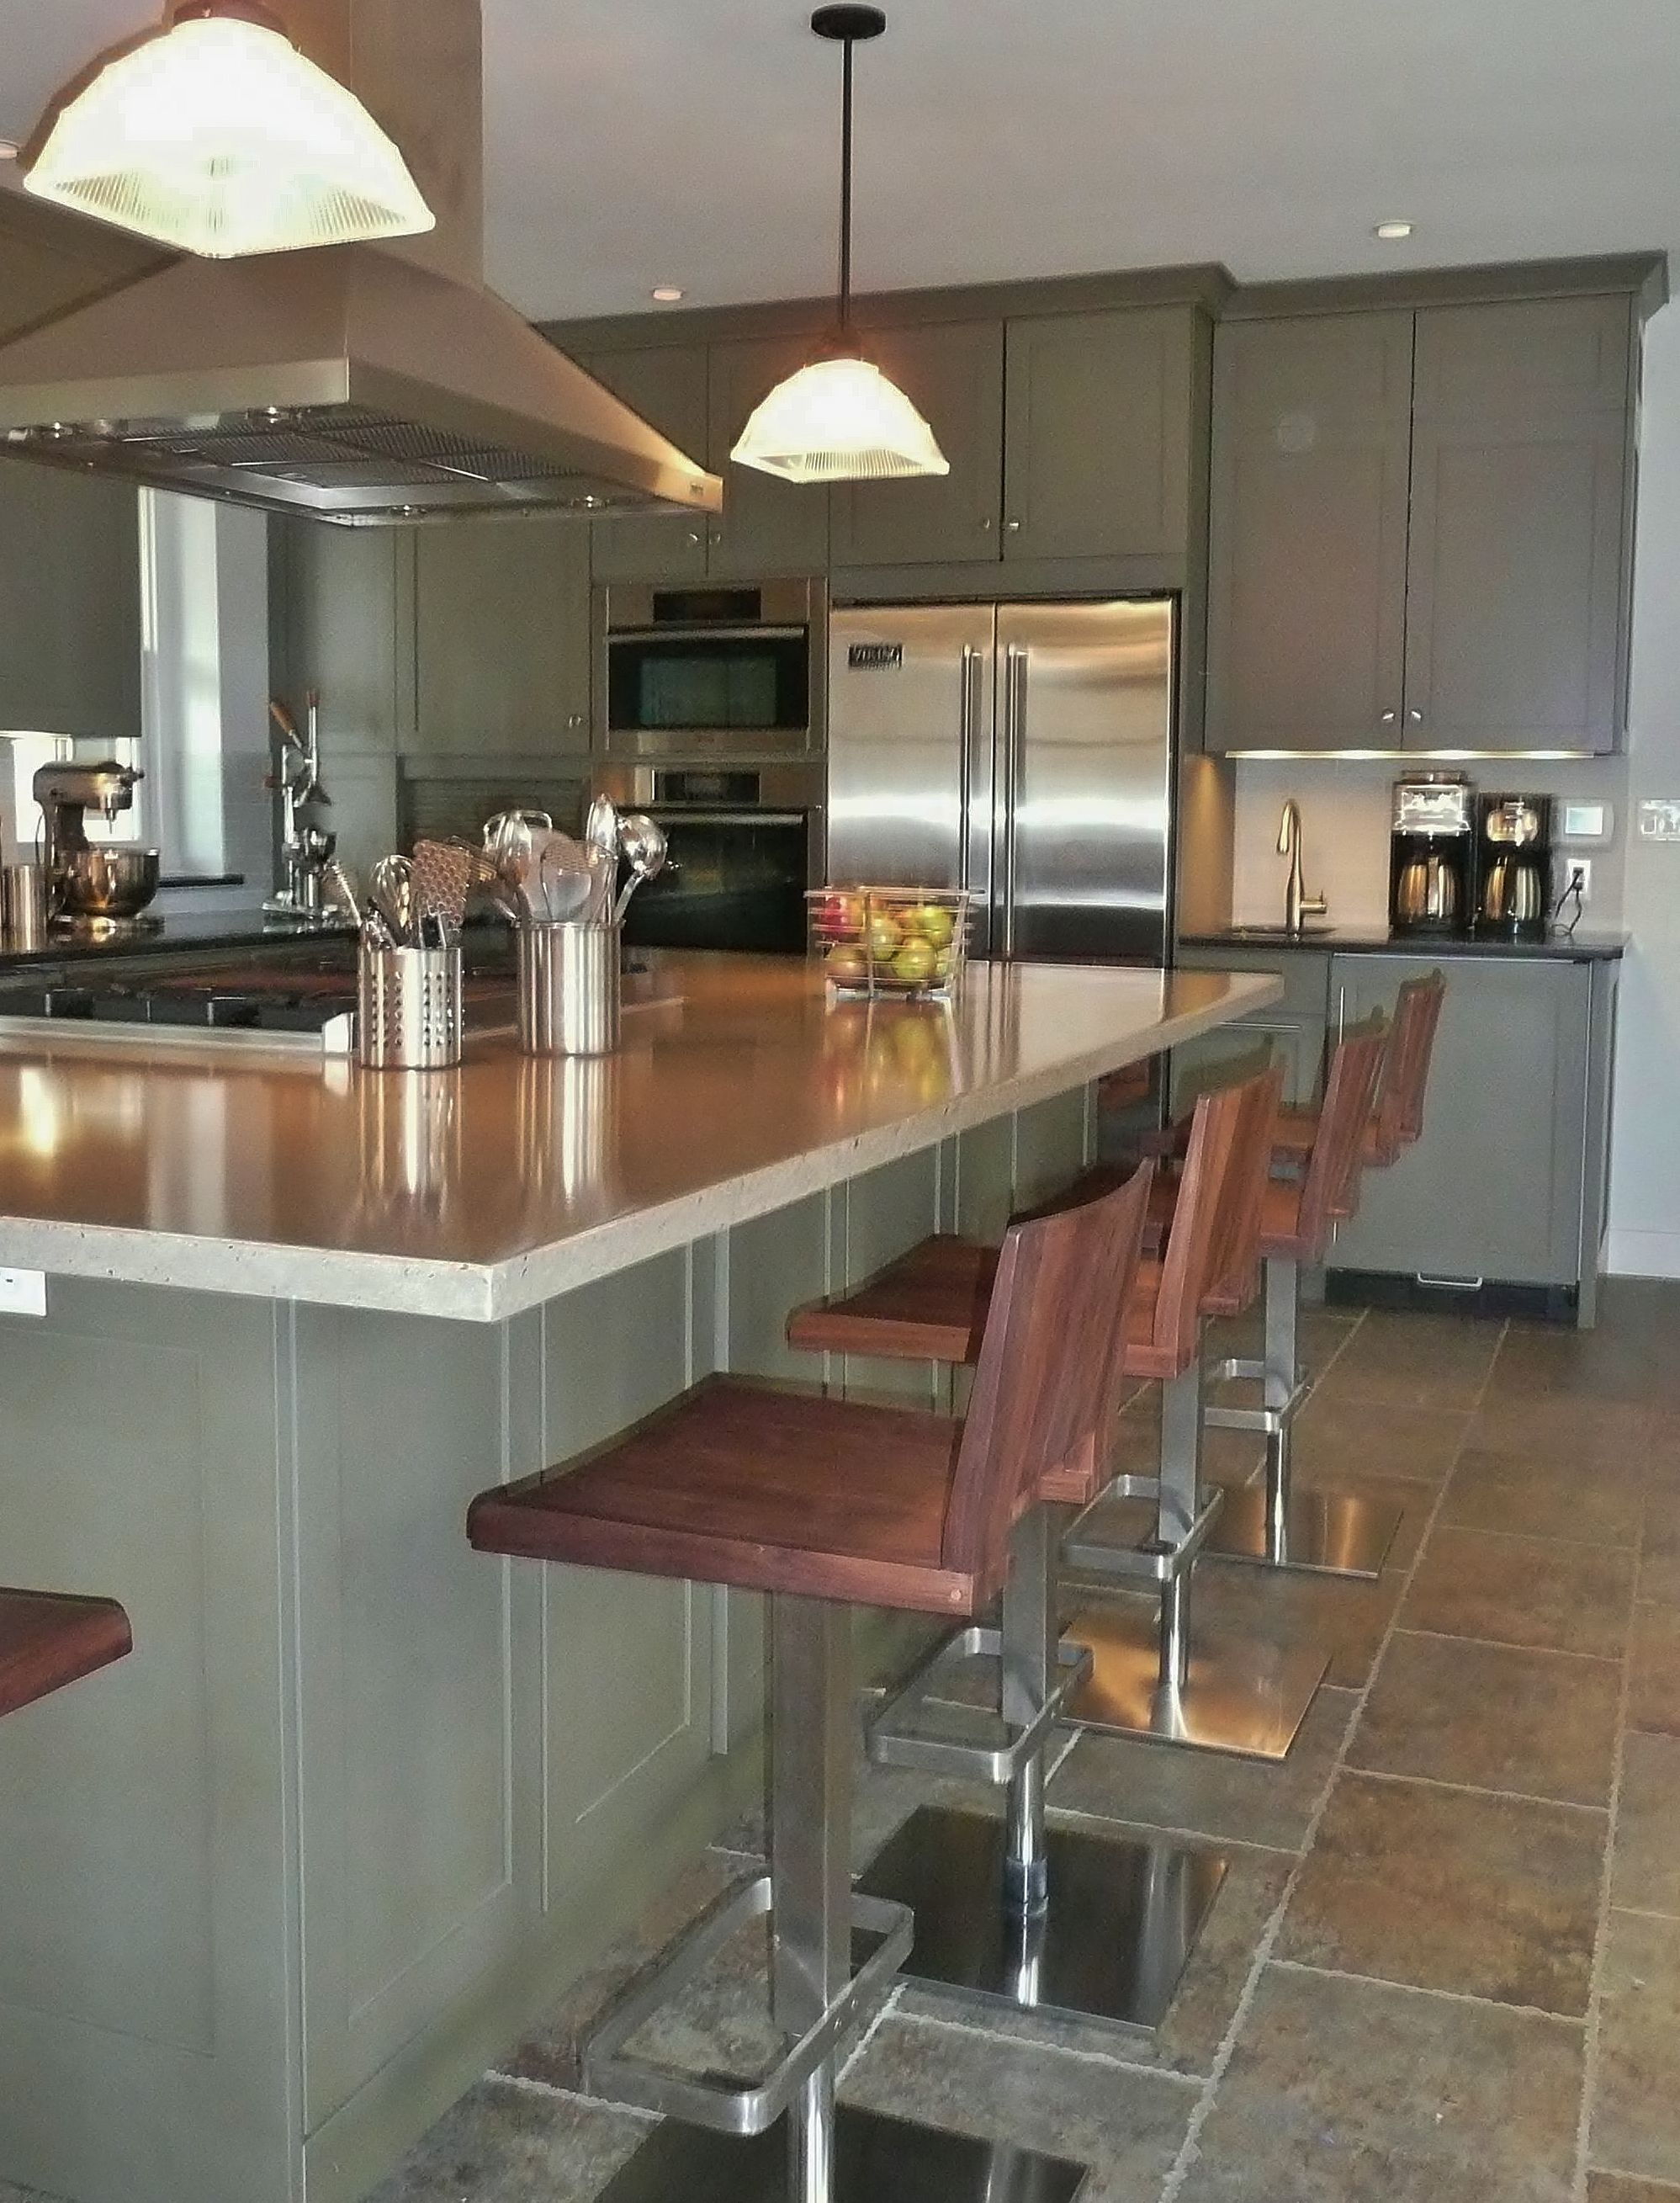 fascinating modern walnut kitchen cabinets | I had the cabinets lacquered in sage green, while vintage ...